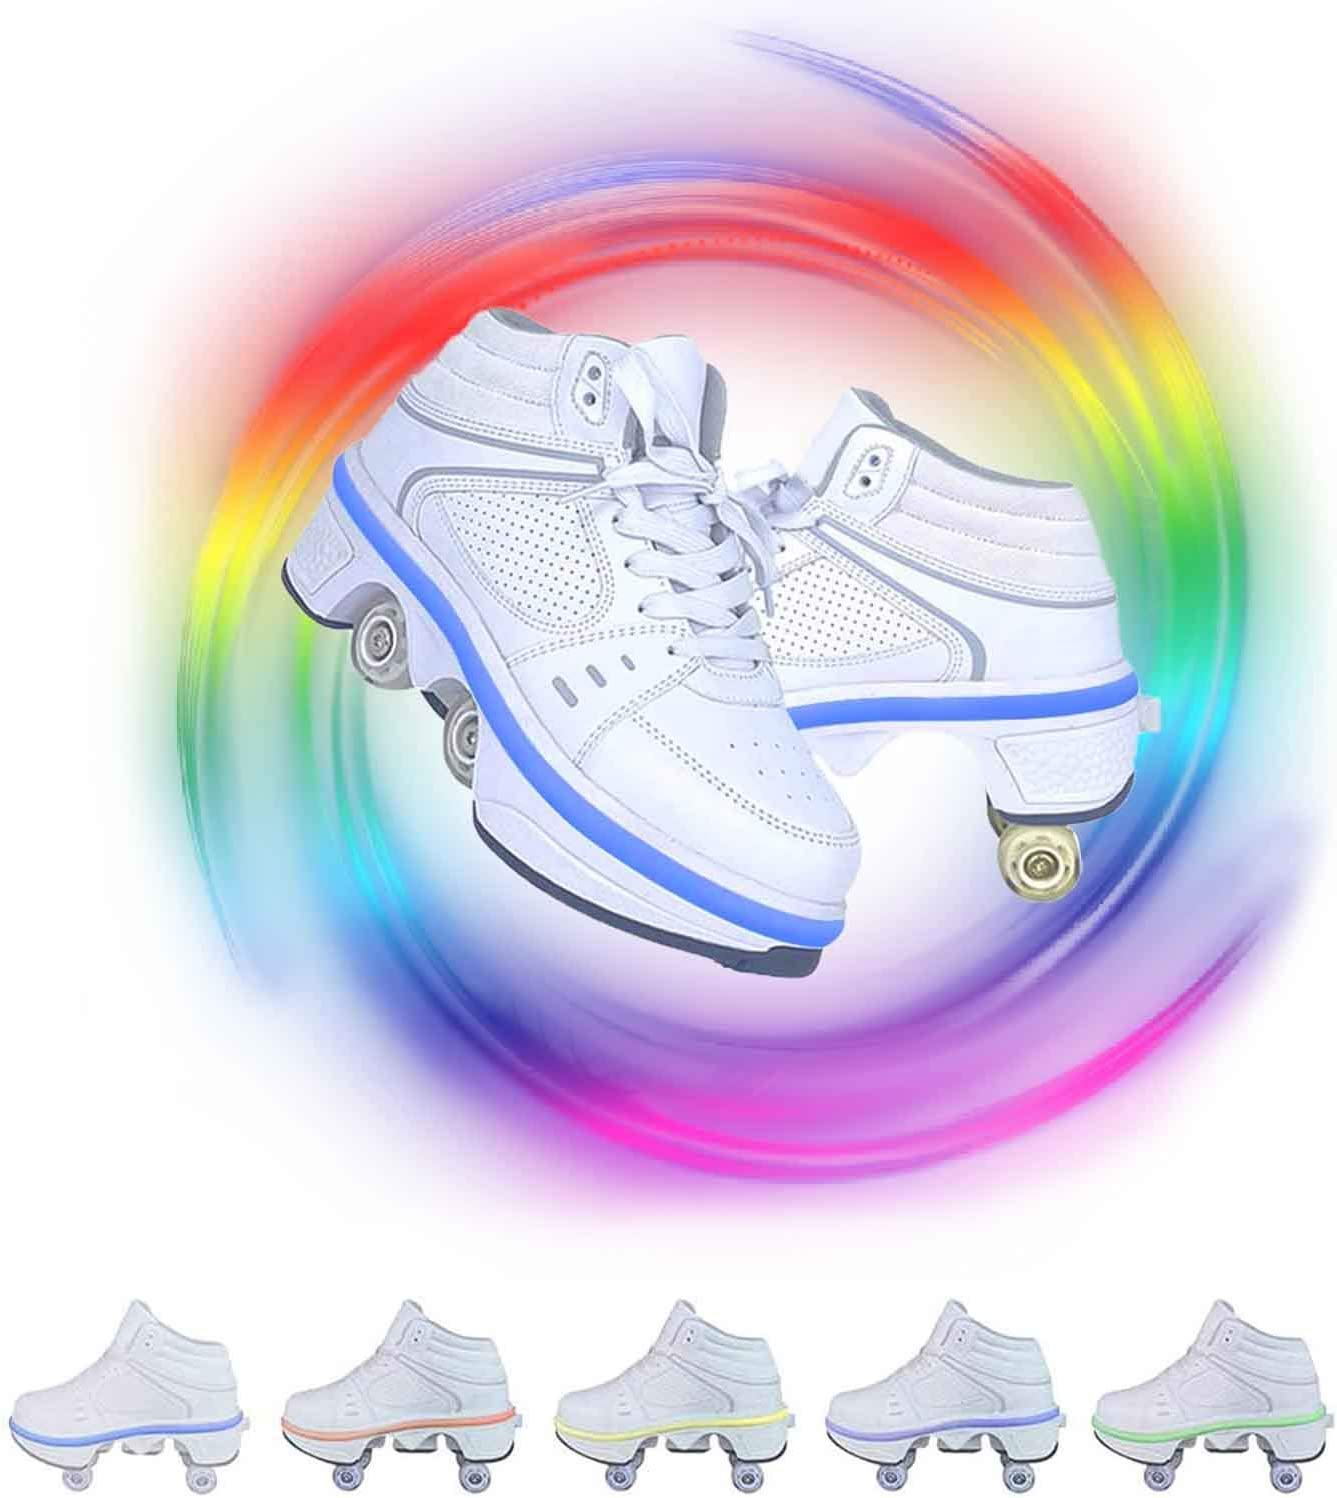 Fashiums Double-Row Deform Wheel Deformation Automatic Walking Shoes Invisible Roller Skate 2 in 1 Removable Pulley Skates Skating